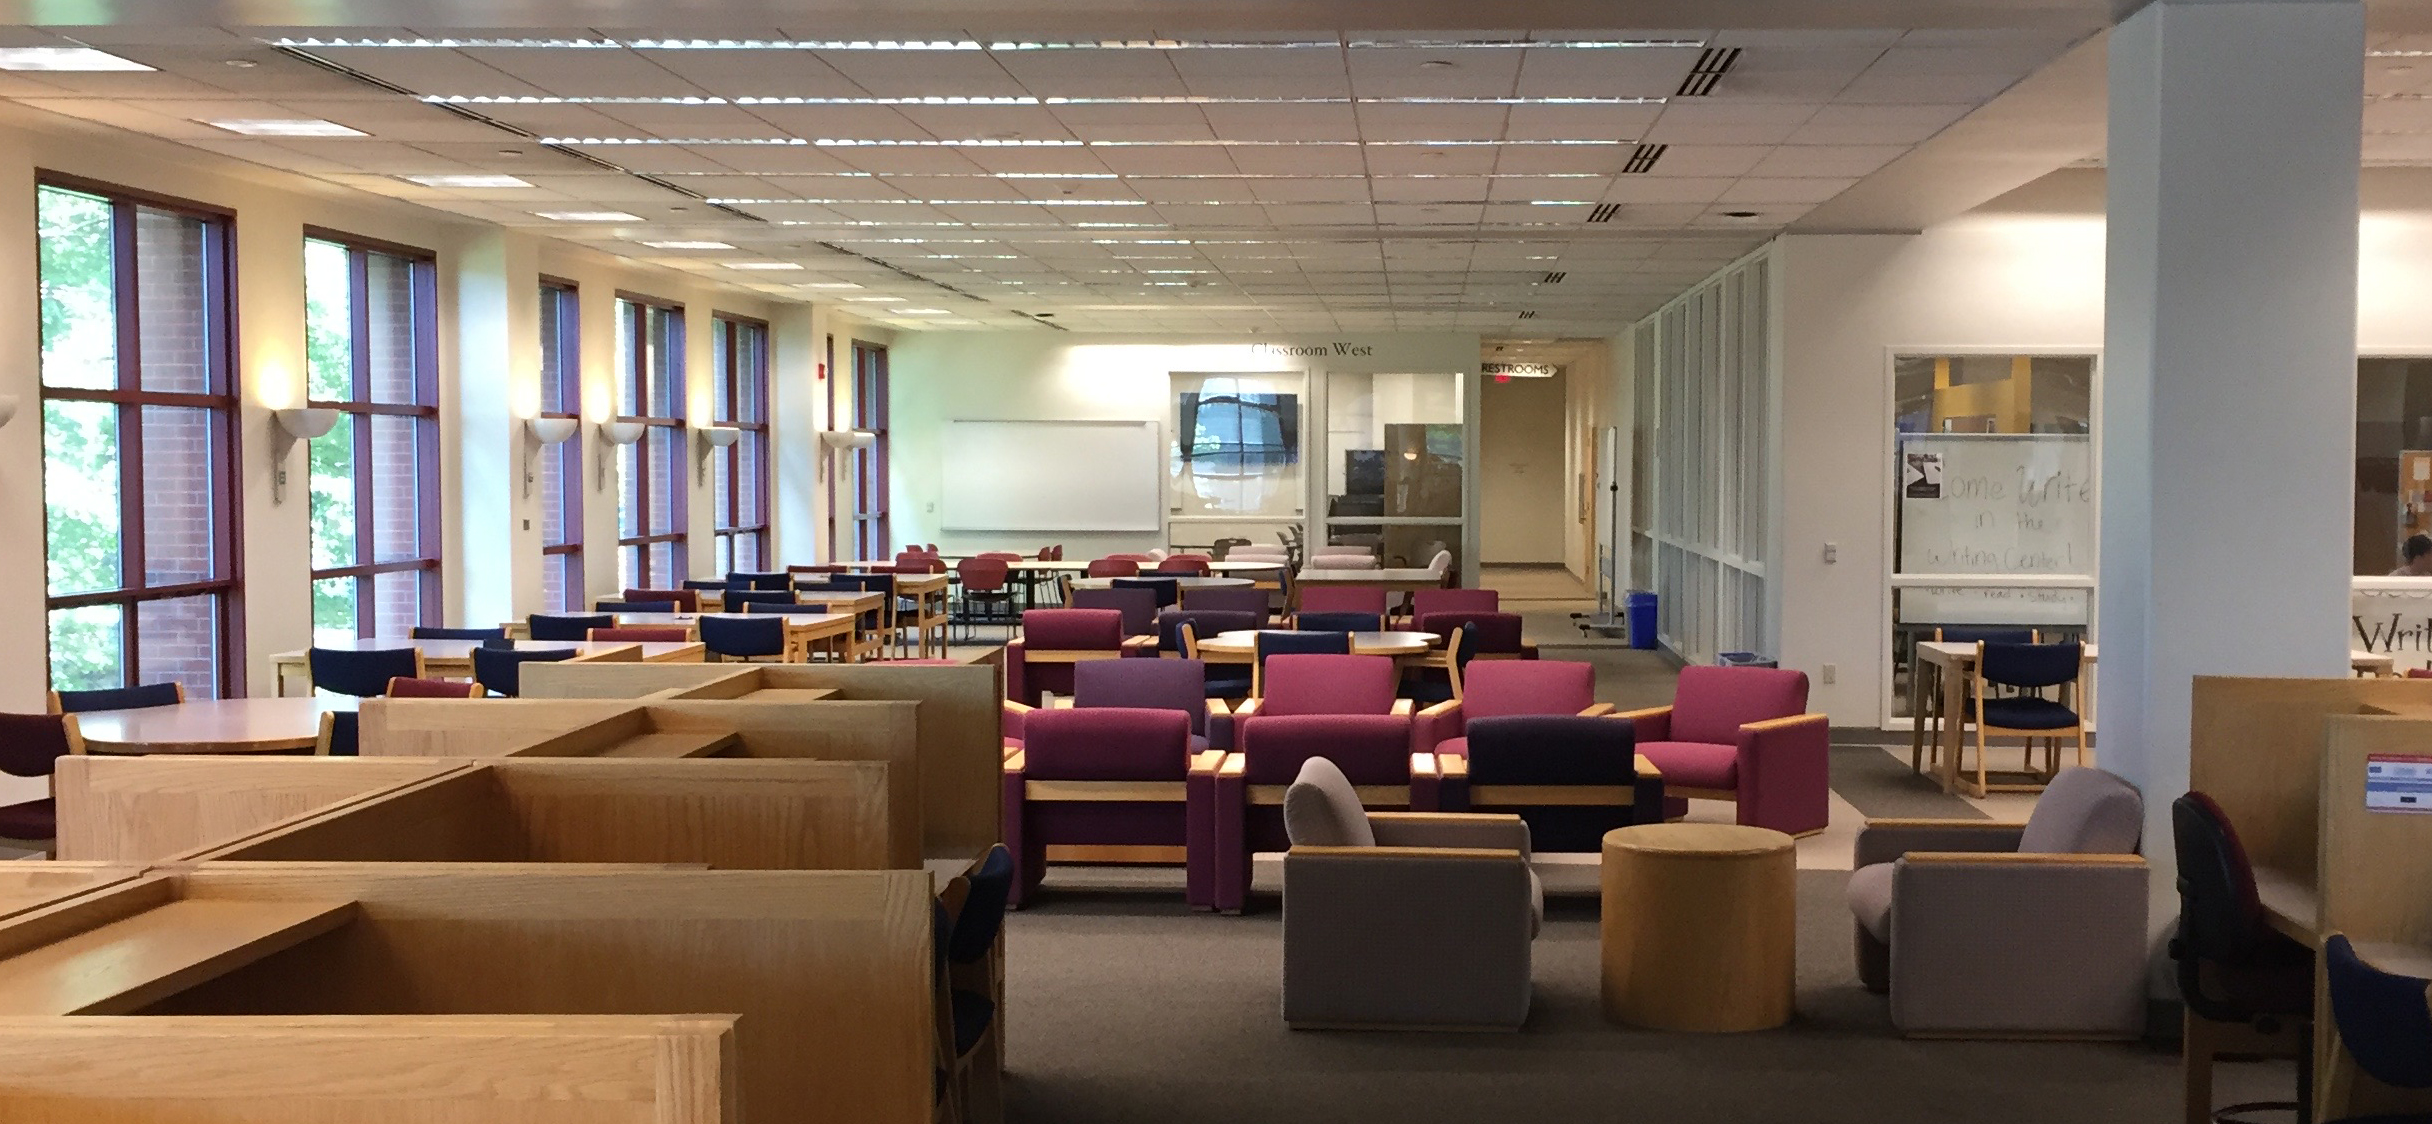 Some of the library's study spaces